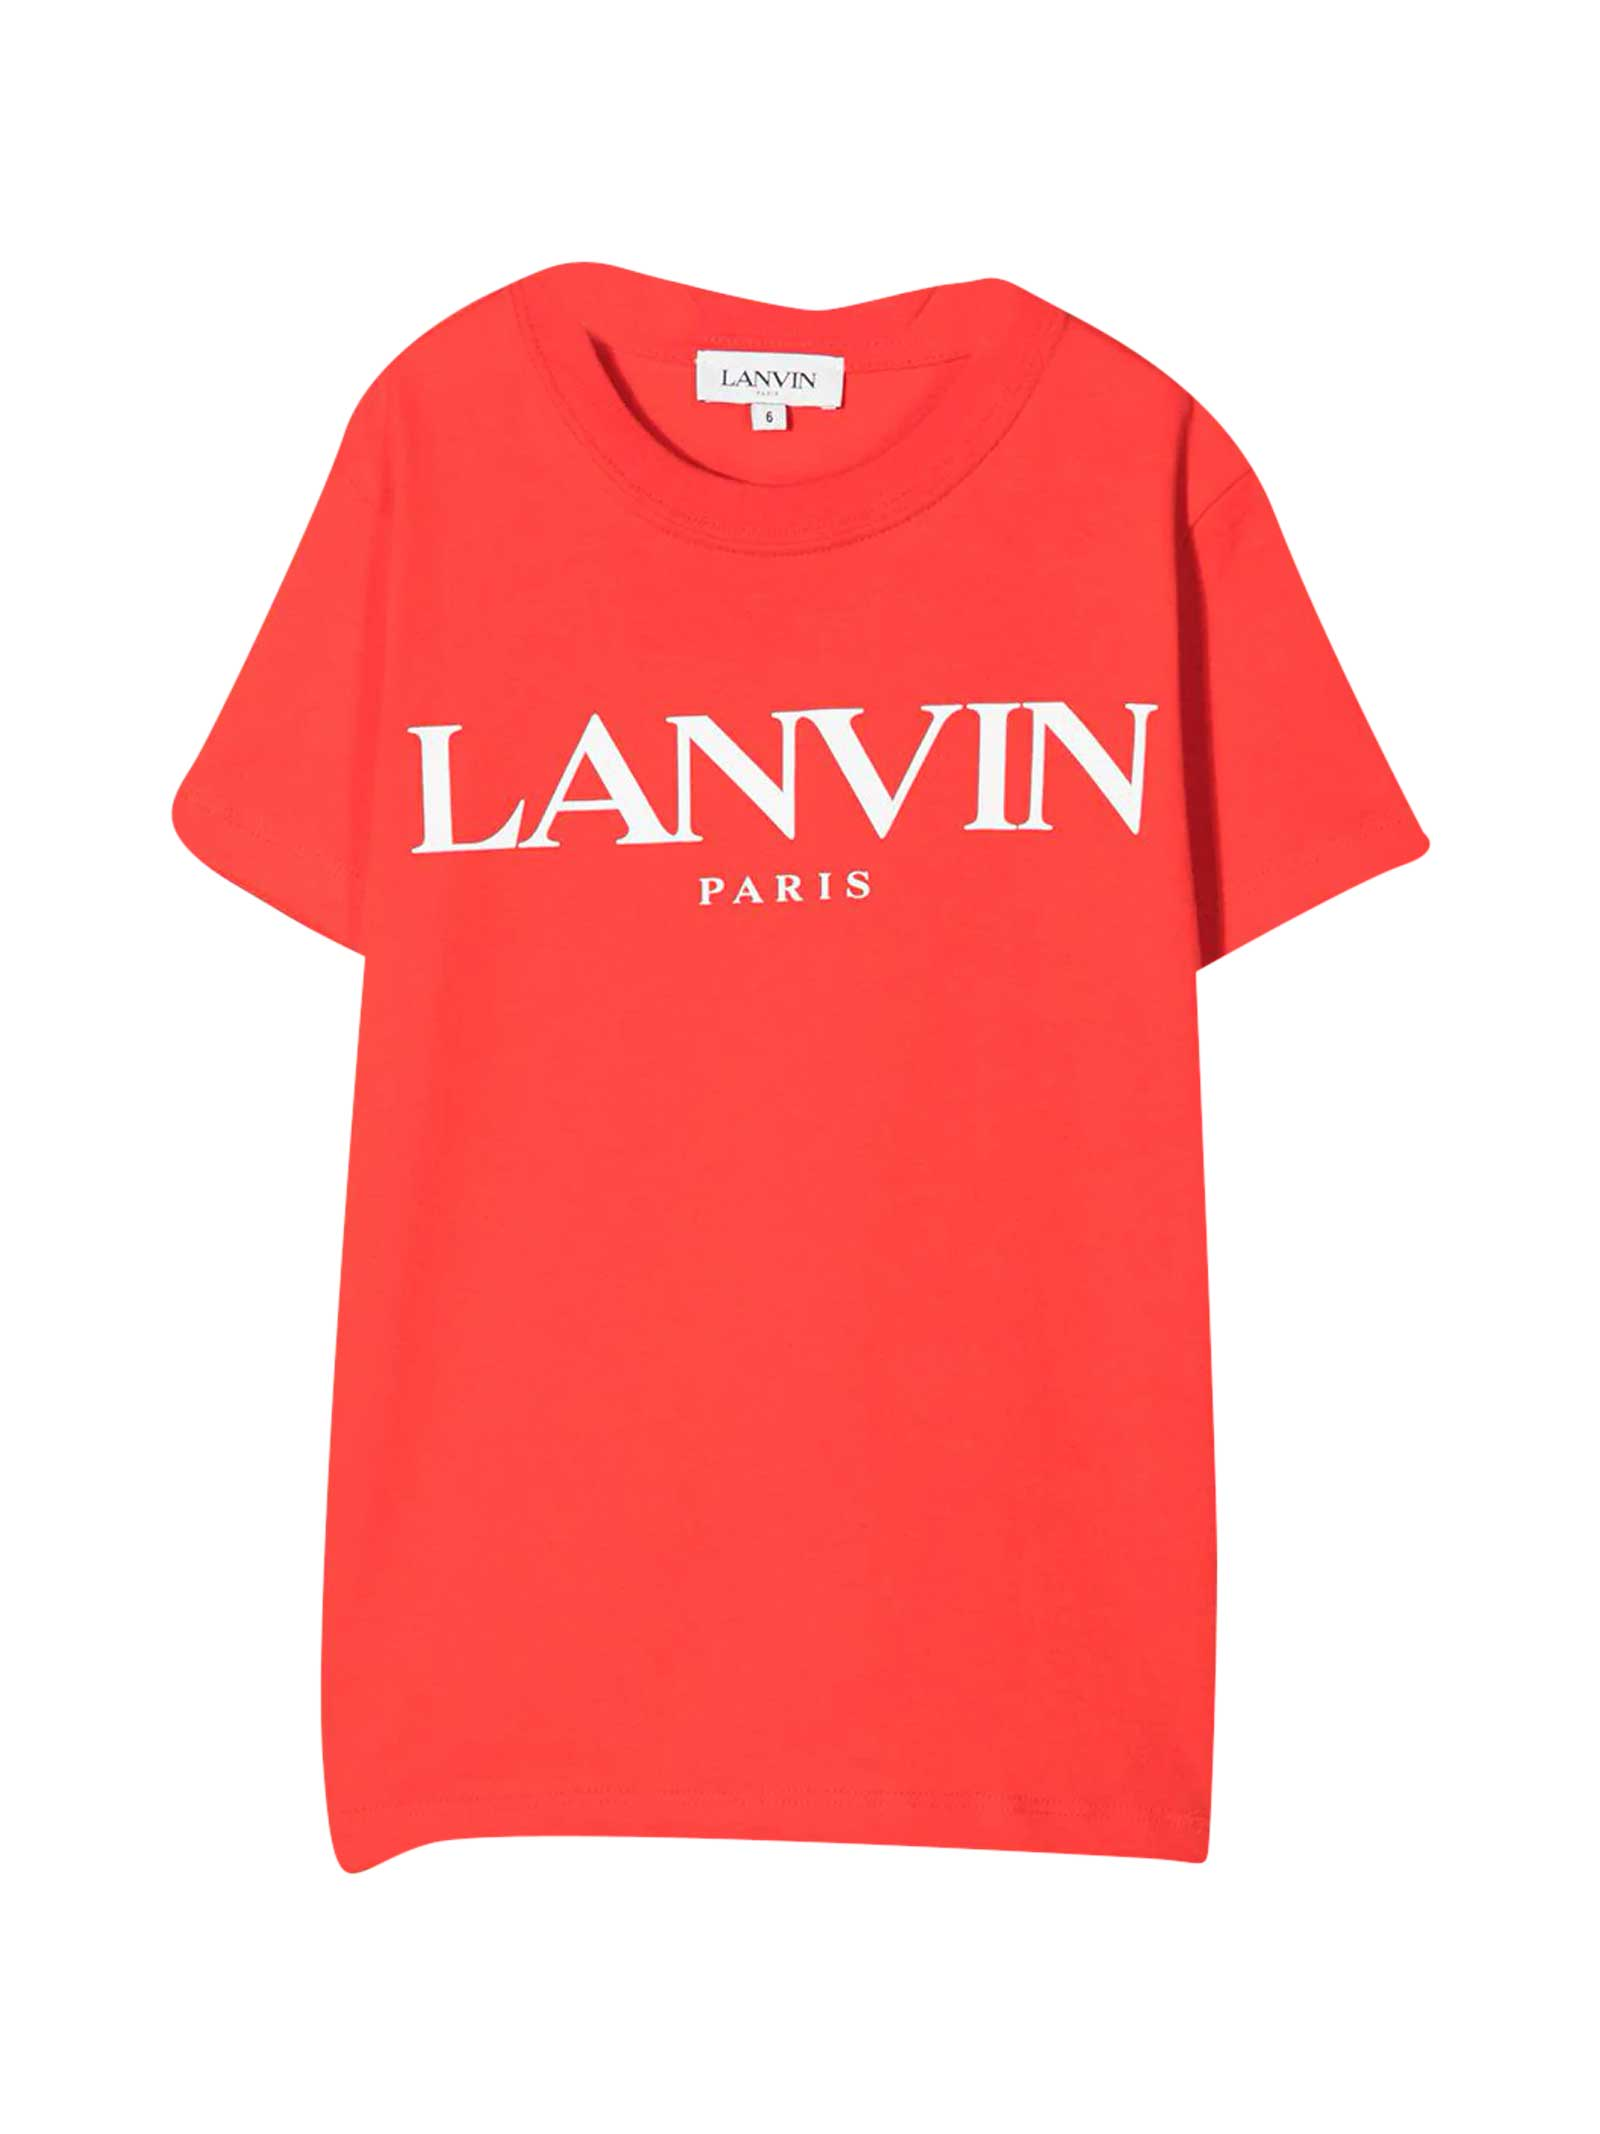 Lanvin Red T-shirt